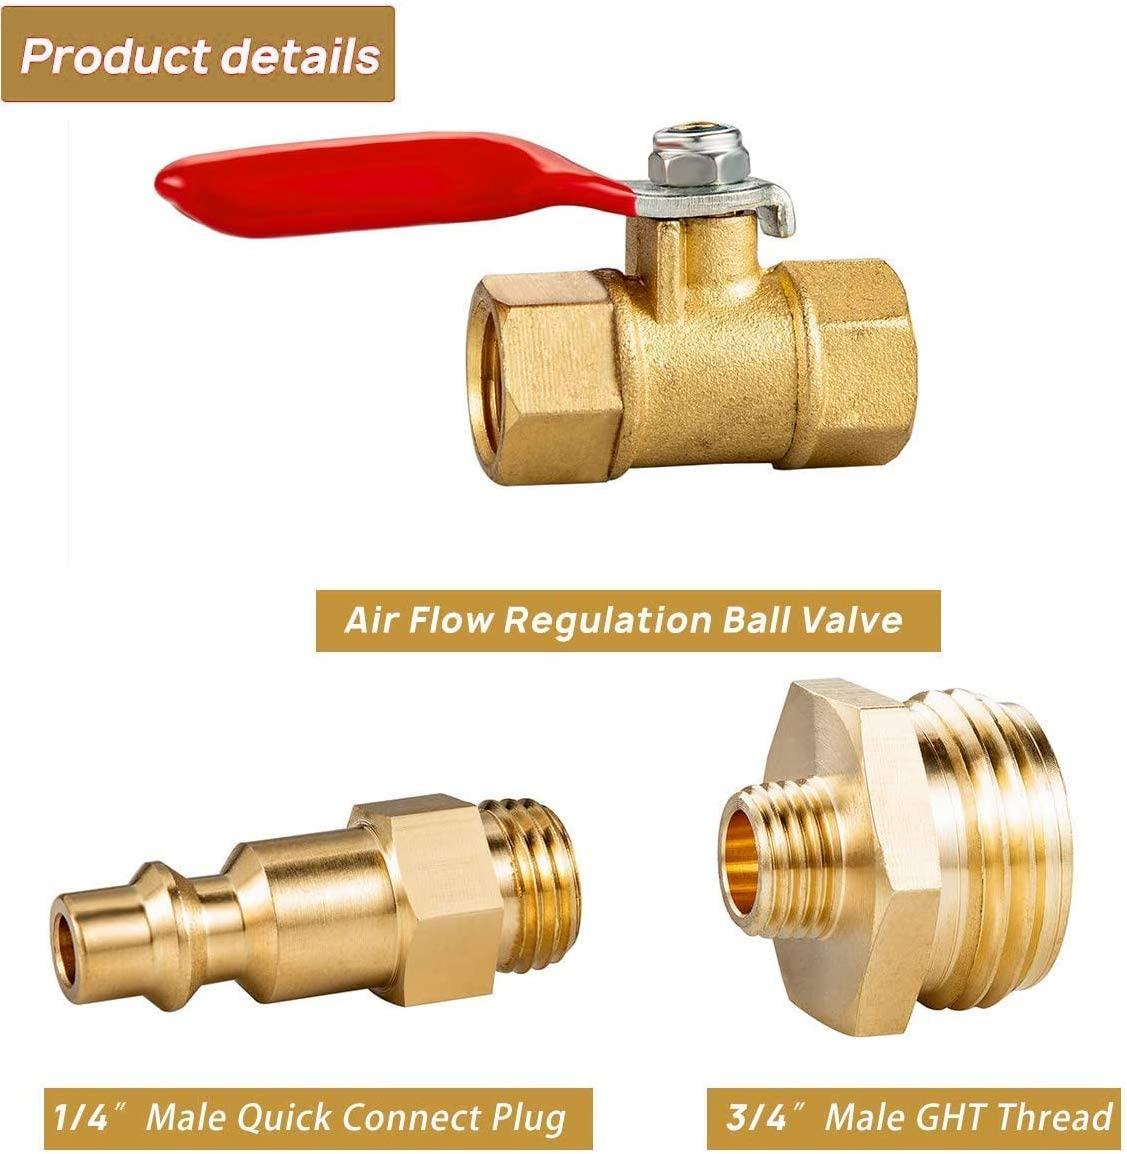 2Pcs, Bronze 2 Pcs Brass Winterize Adapter with Teflon Tape Hose Quick Connector RV Hose Quick Connect Fittings Garden 3//4 Ball Valve RV Water Pressure Regulator 1//4 Inch Male Quick Connecting Plug 3//4 Inch Male GHT Thread 1//4 Inch Ball Valve